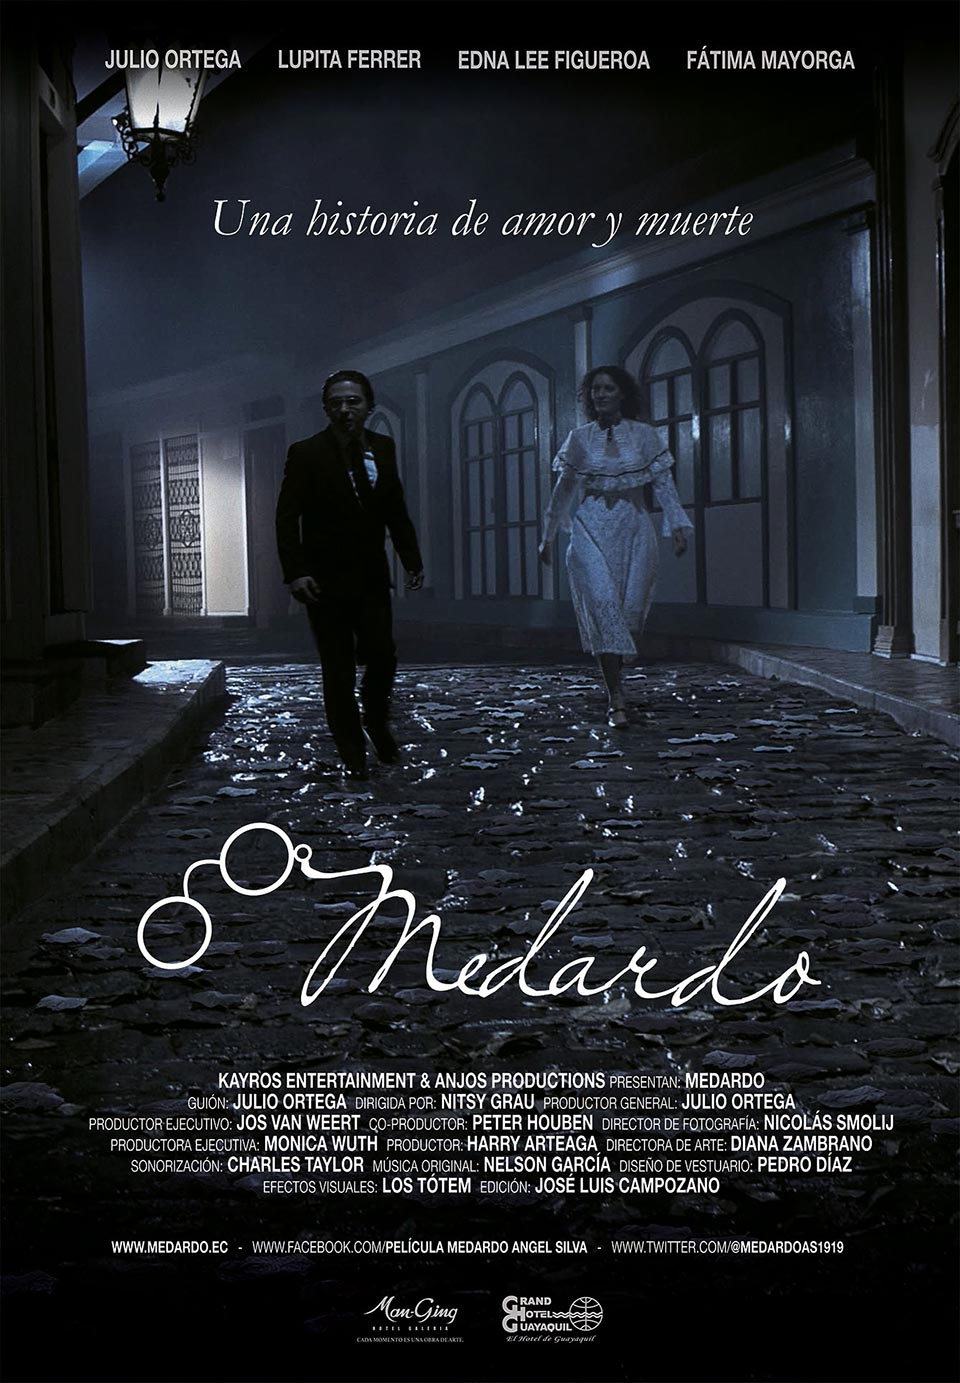 Medardo official poster